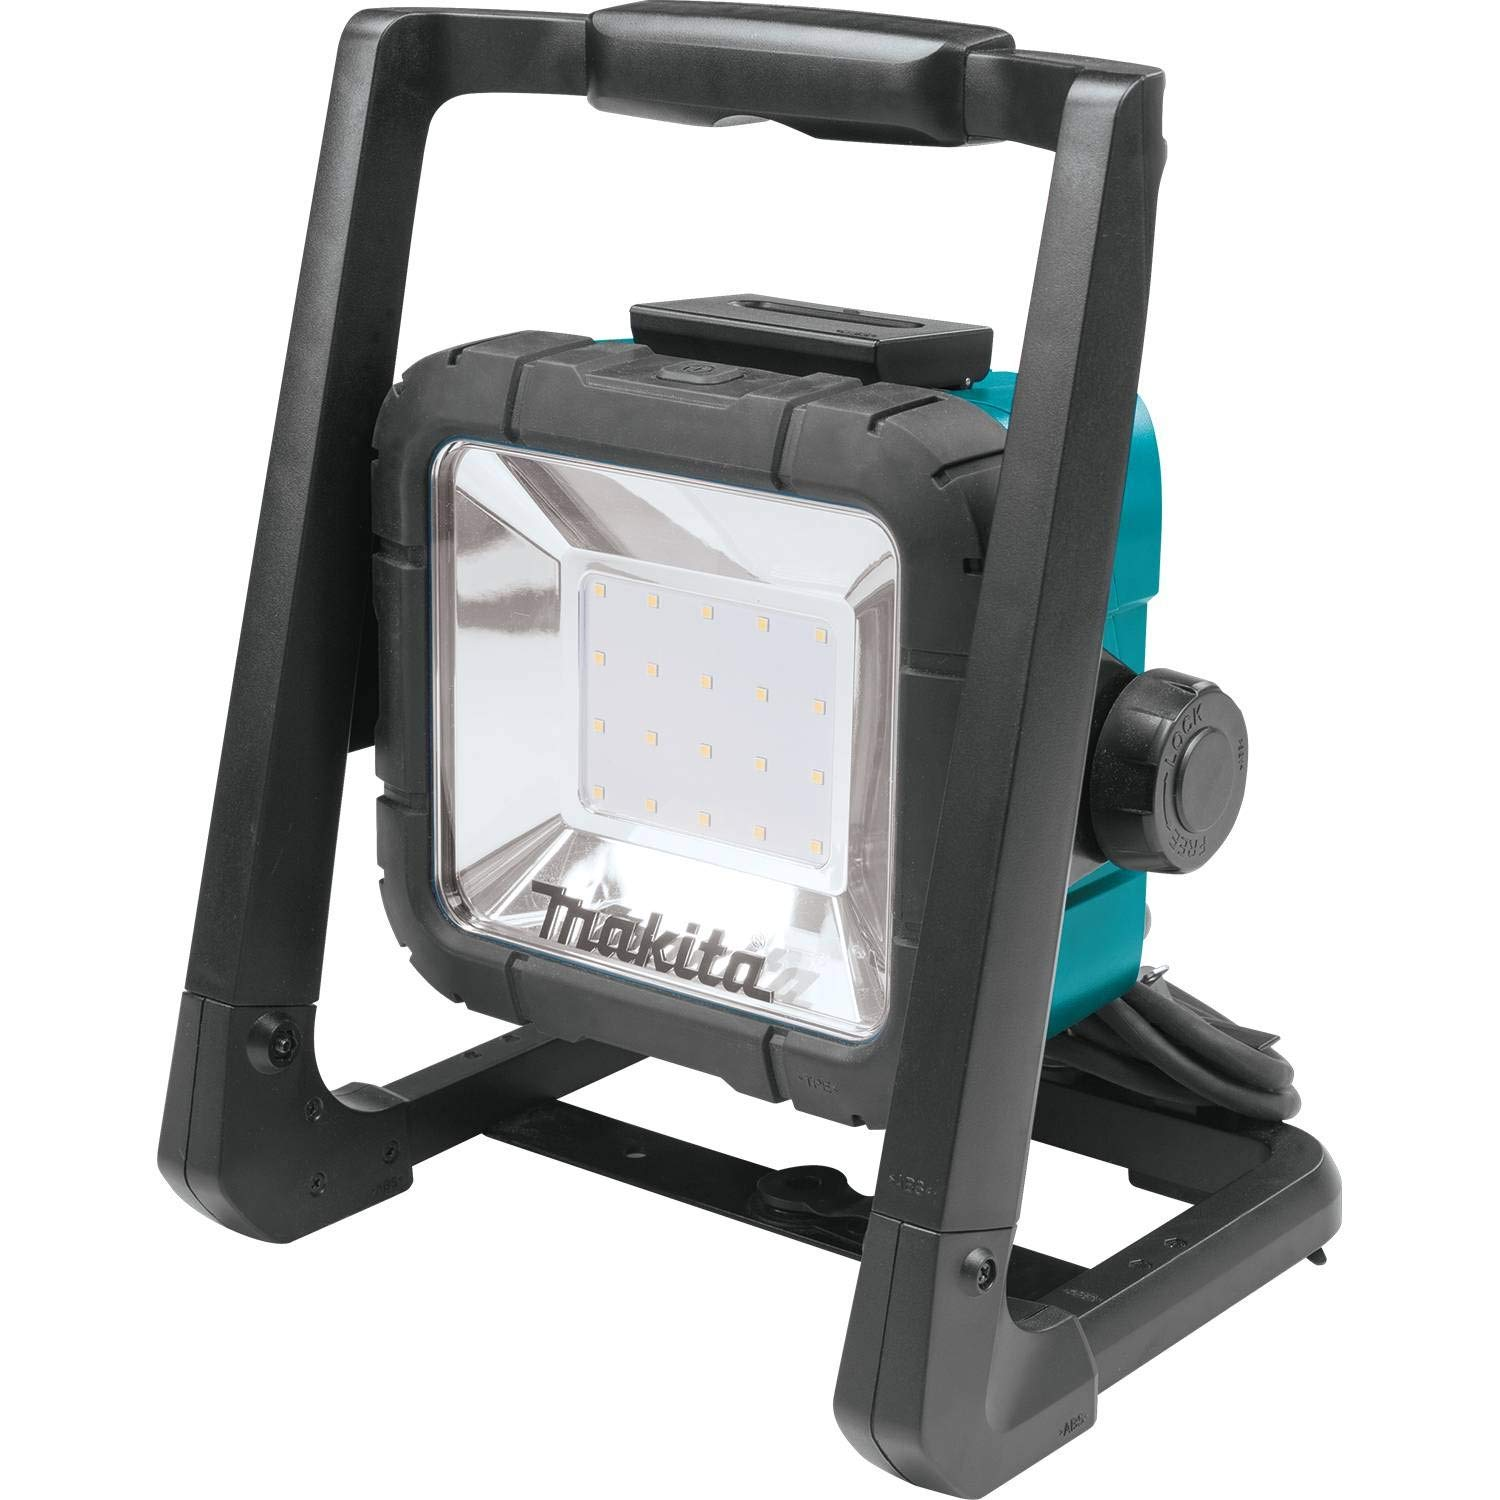 Makita DML805 18V LXT Lithium-Ion Cordless/Corded 20 L.E.D. Flood Light, Only by Makita